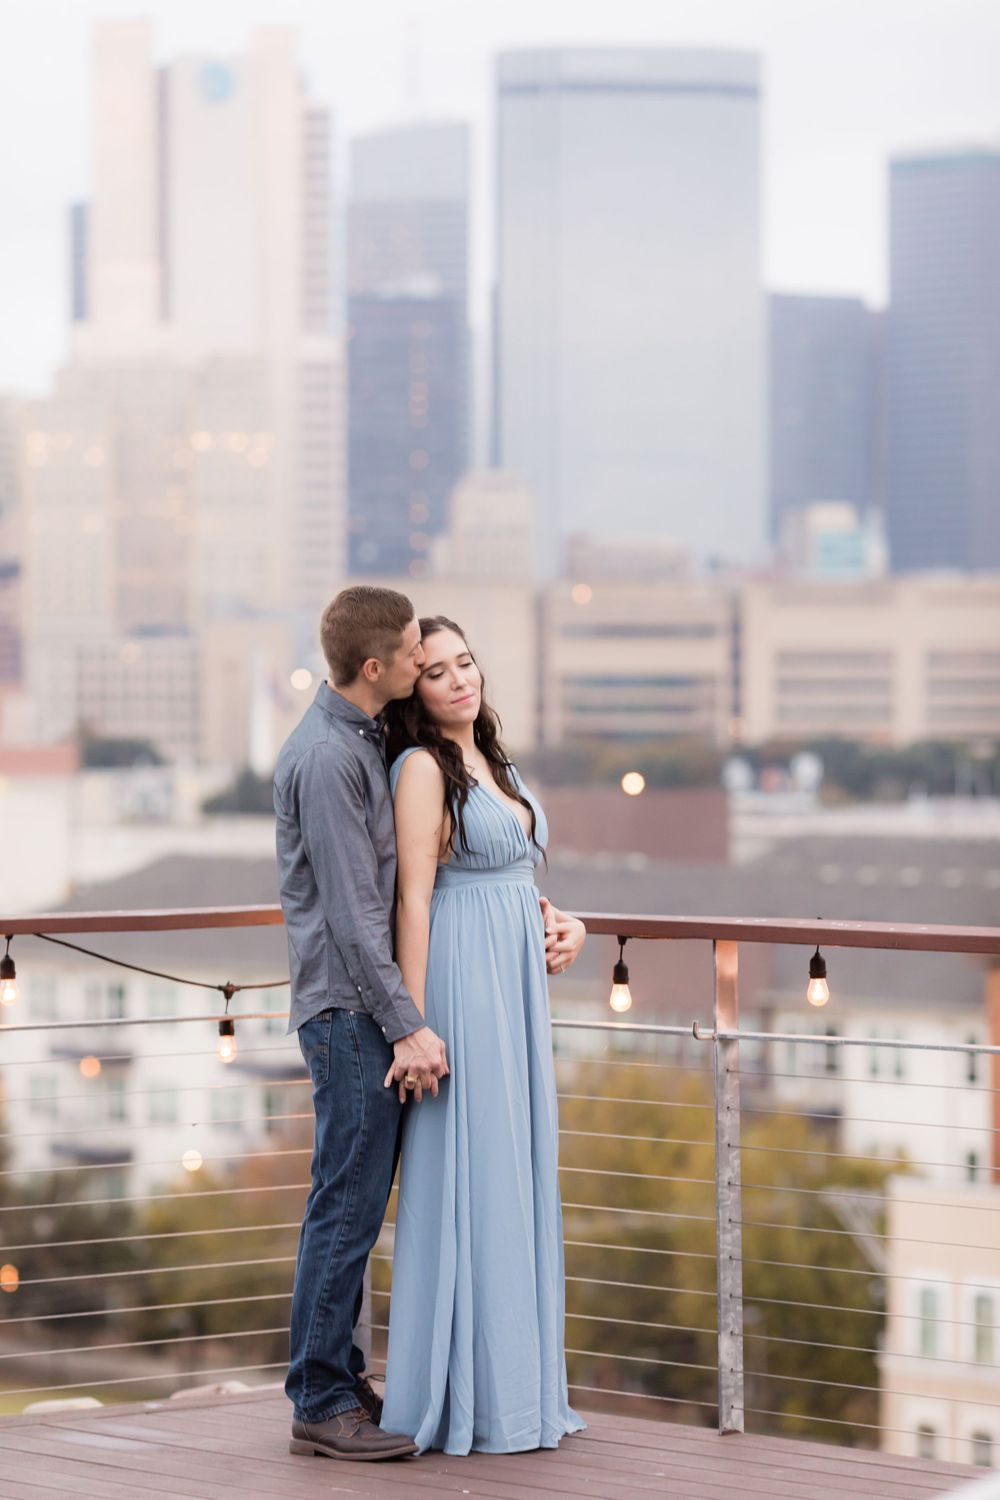 Engagement Session with rooftop view at CANVAS Hotel in Dallas.